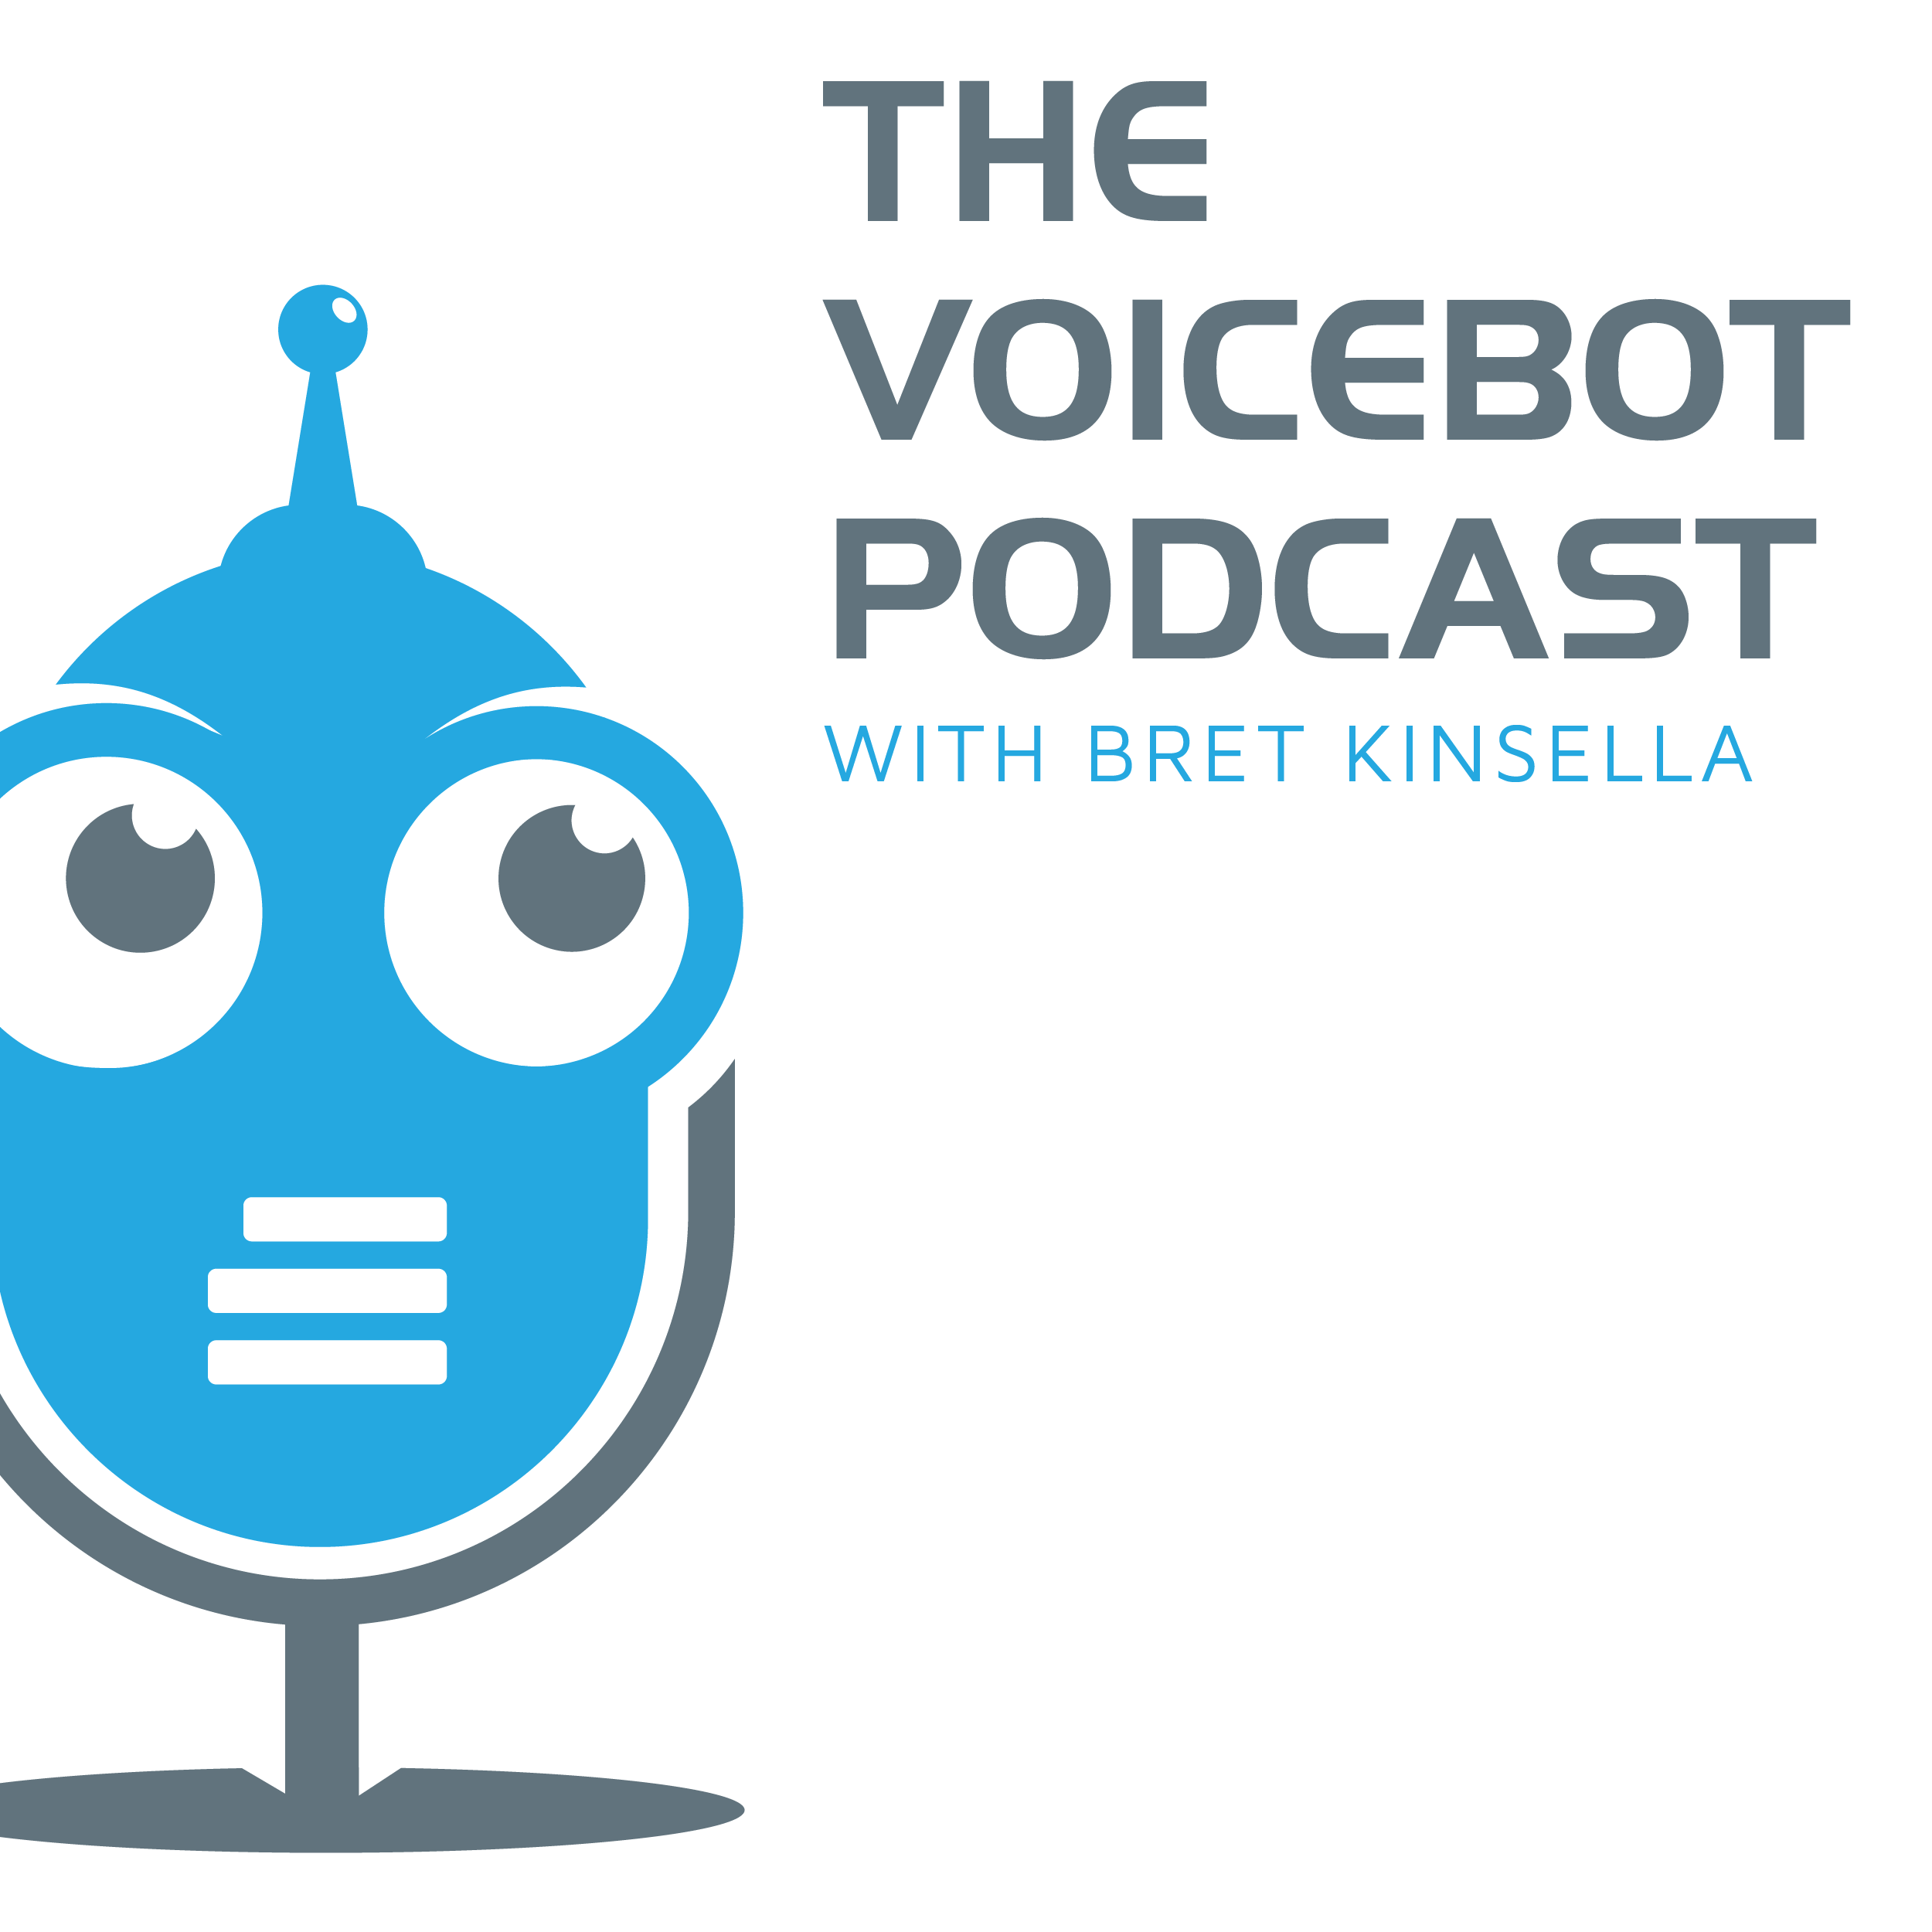 Audrey Arbeeny of Audiobrain Talks Sonic Branding and the Rise of Voice - Voicebot Podcast Ep. 100